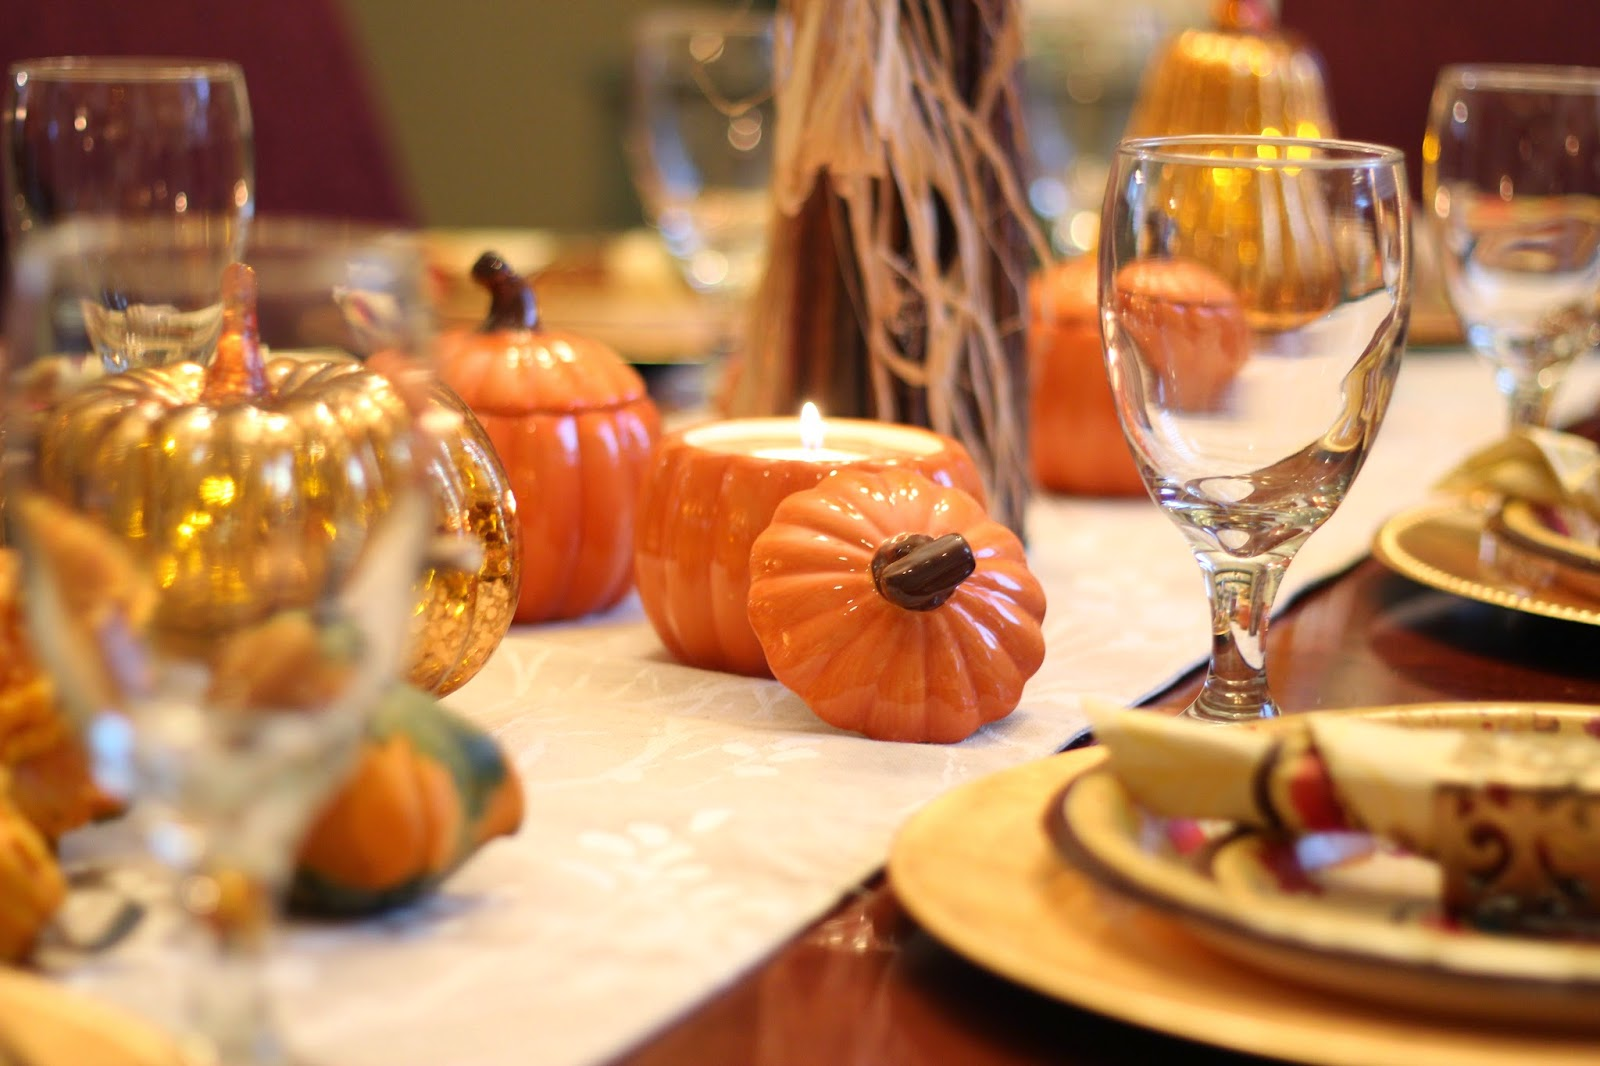 thanksgiving table decorating ideas - Thanksgiving Table Decorations